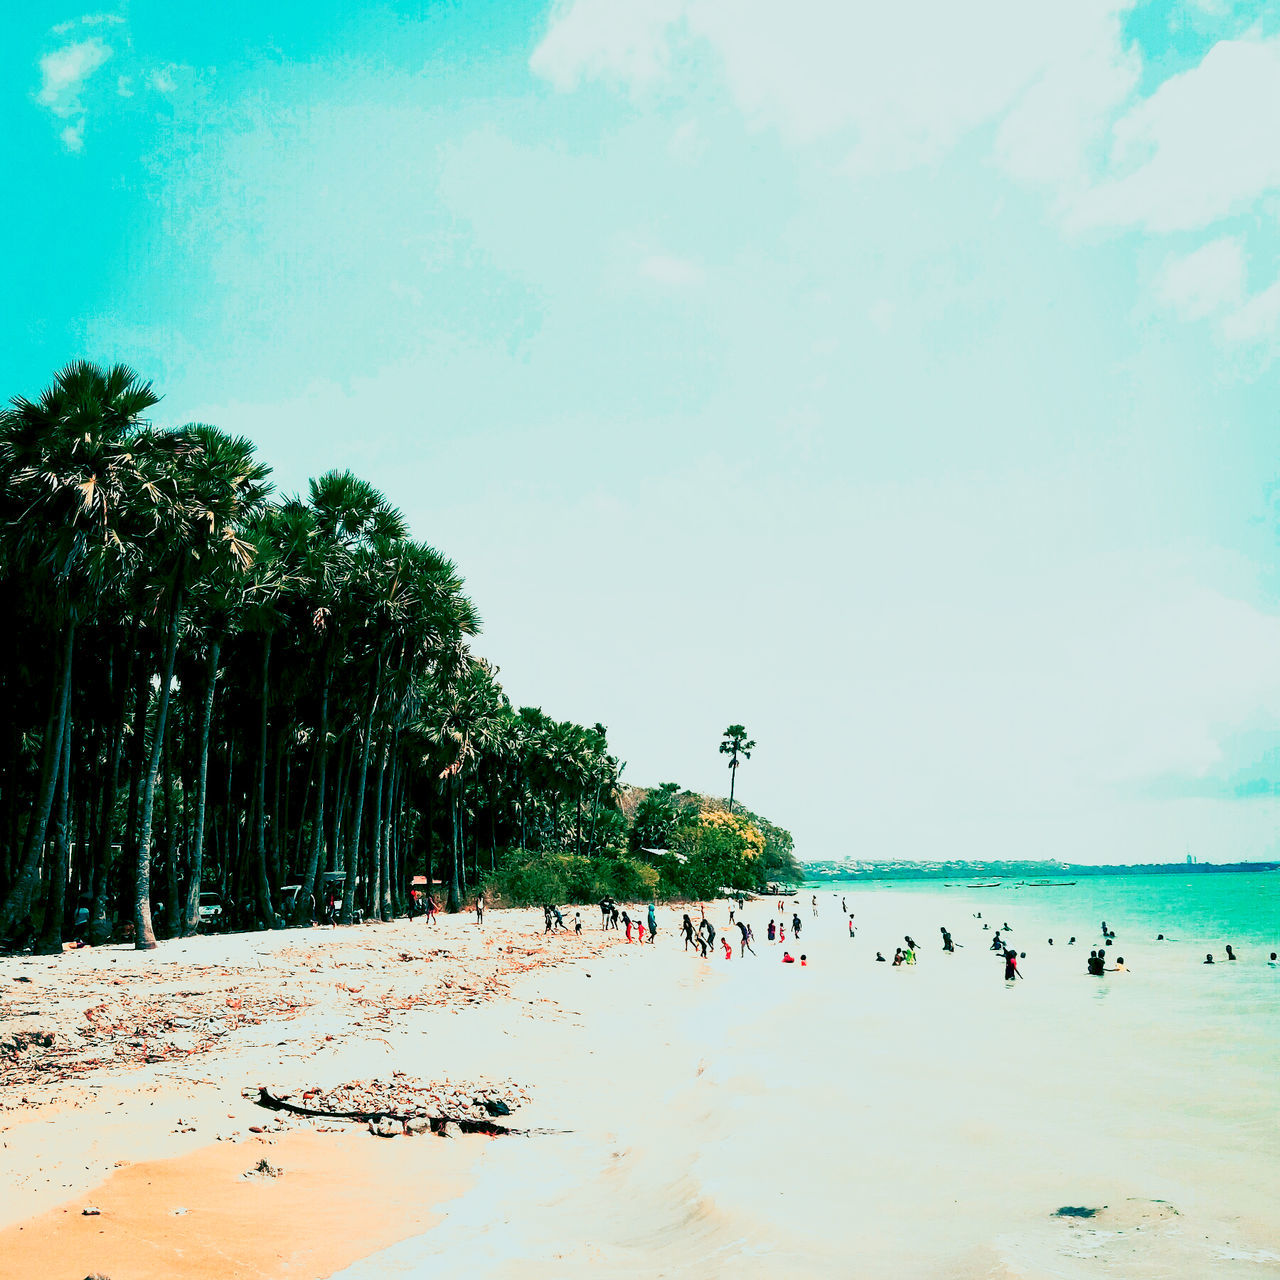 This is Batu Nona Beach. Sea Beach Water Large Group Of People Tree Vacations Horizon Over Water Lifestyles Leisure Activity Sand Tranquil Scene Enjoyment Tranquility Cloud Summer Shore Ocean Coastline Calm Sky